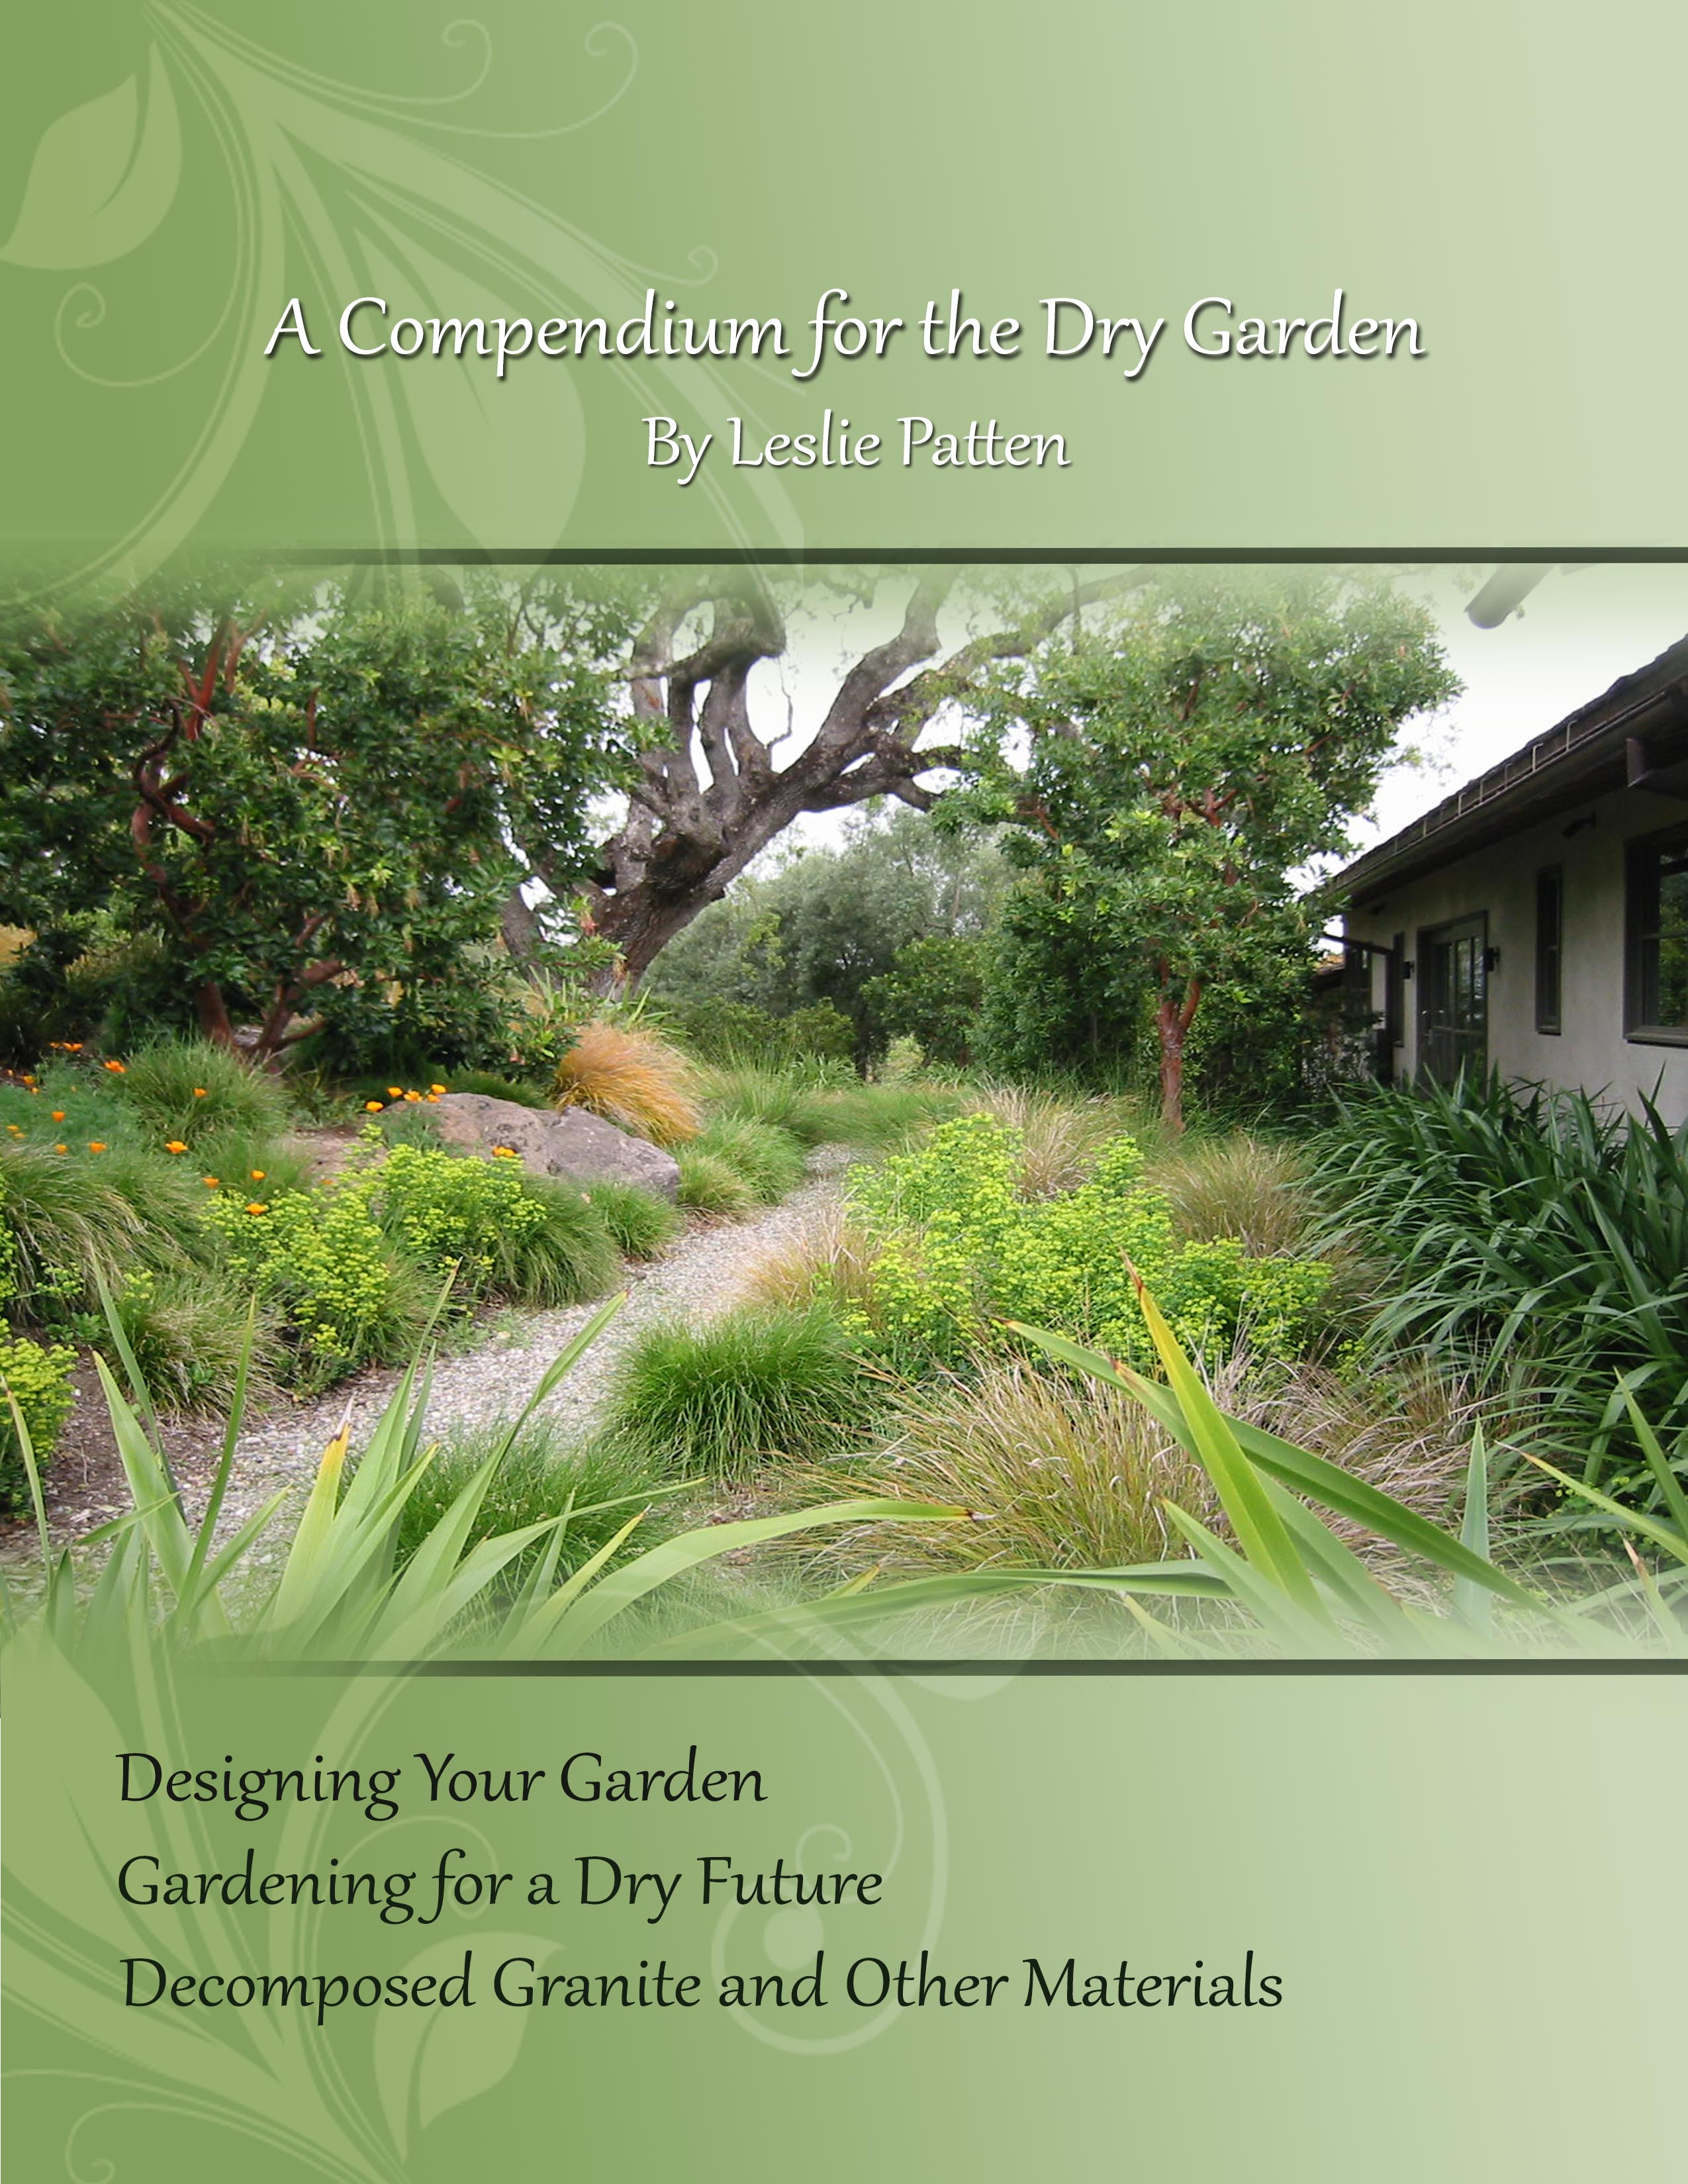 A Compendium for the Dry Garden